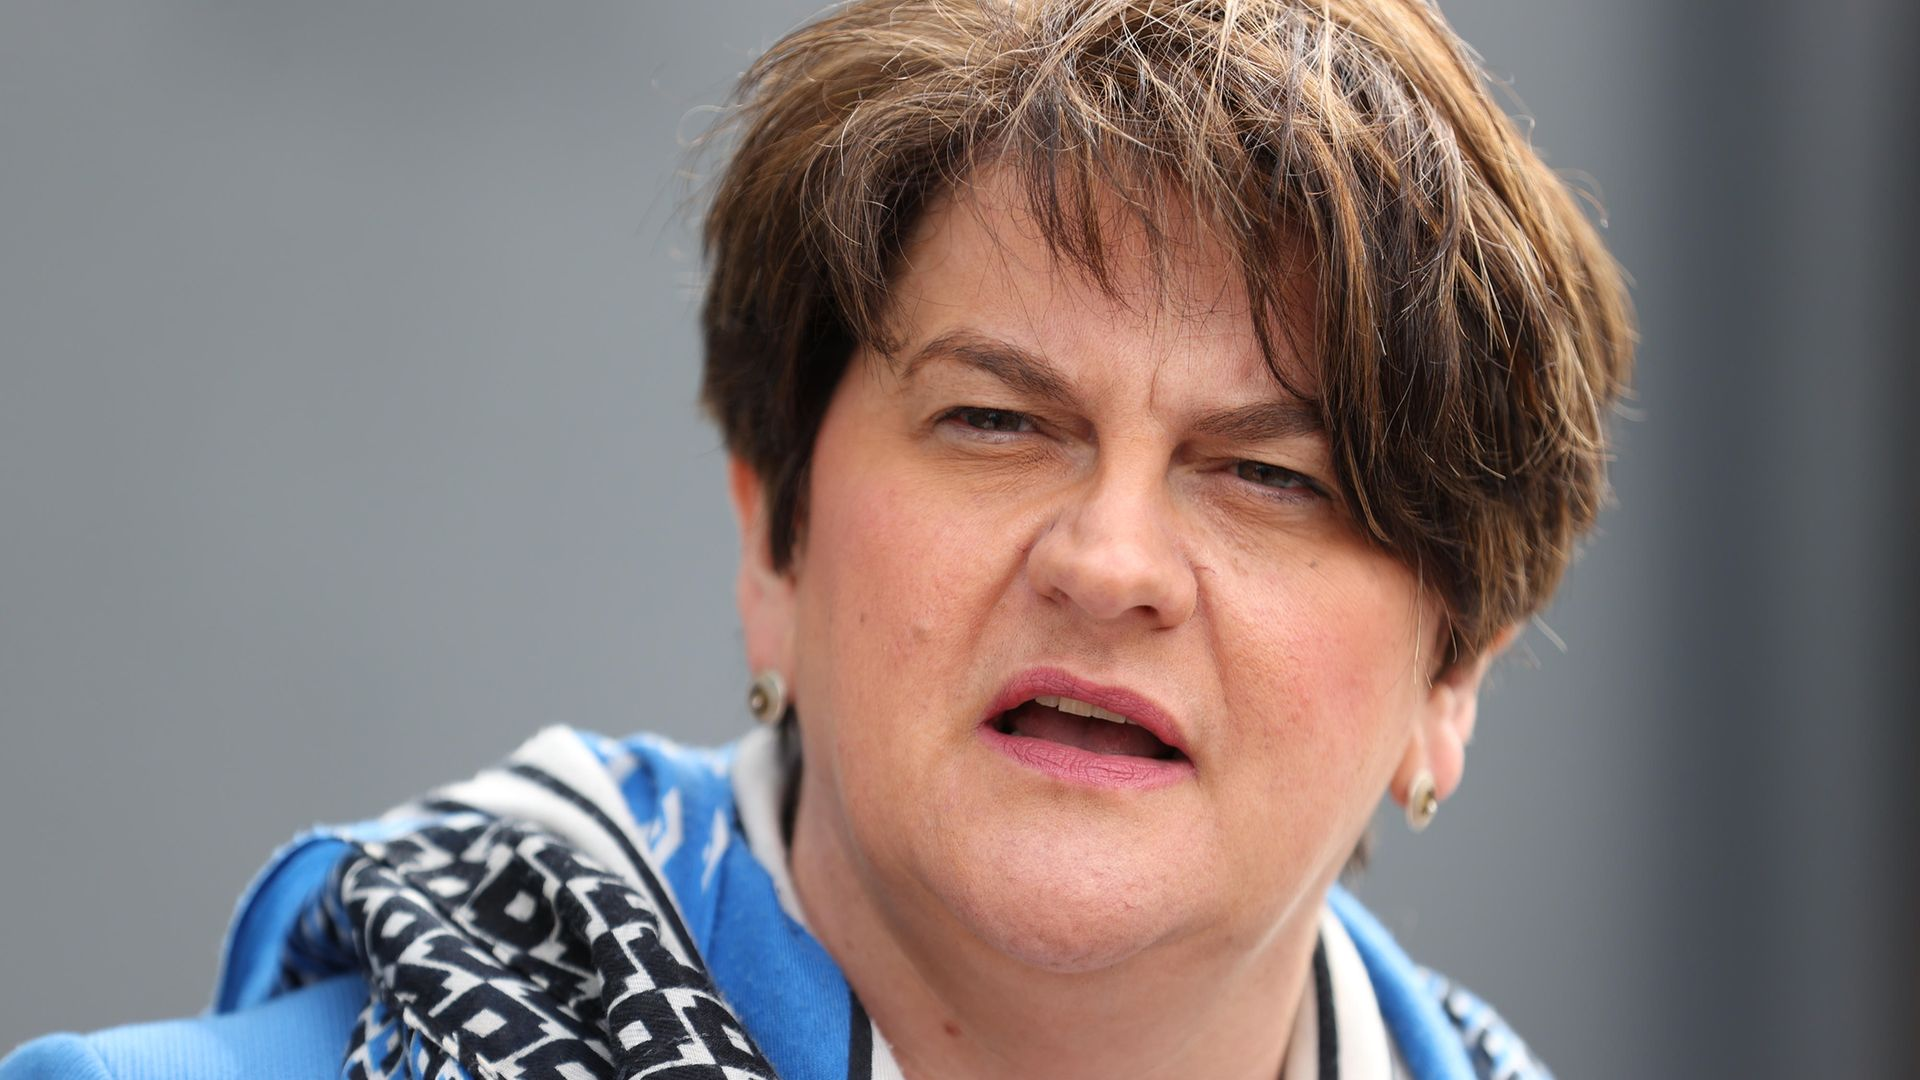 Arlene Foster has stepped down as first minister of Northern Ireland - Credit: PA